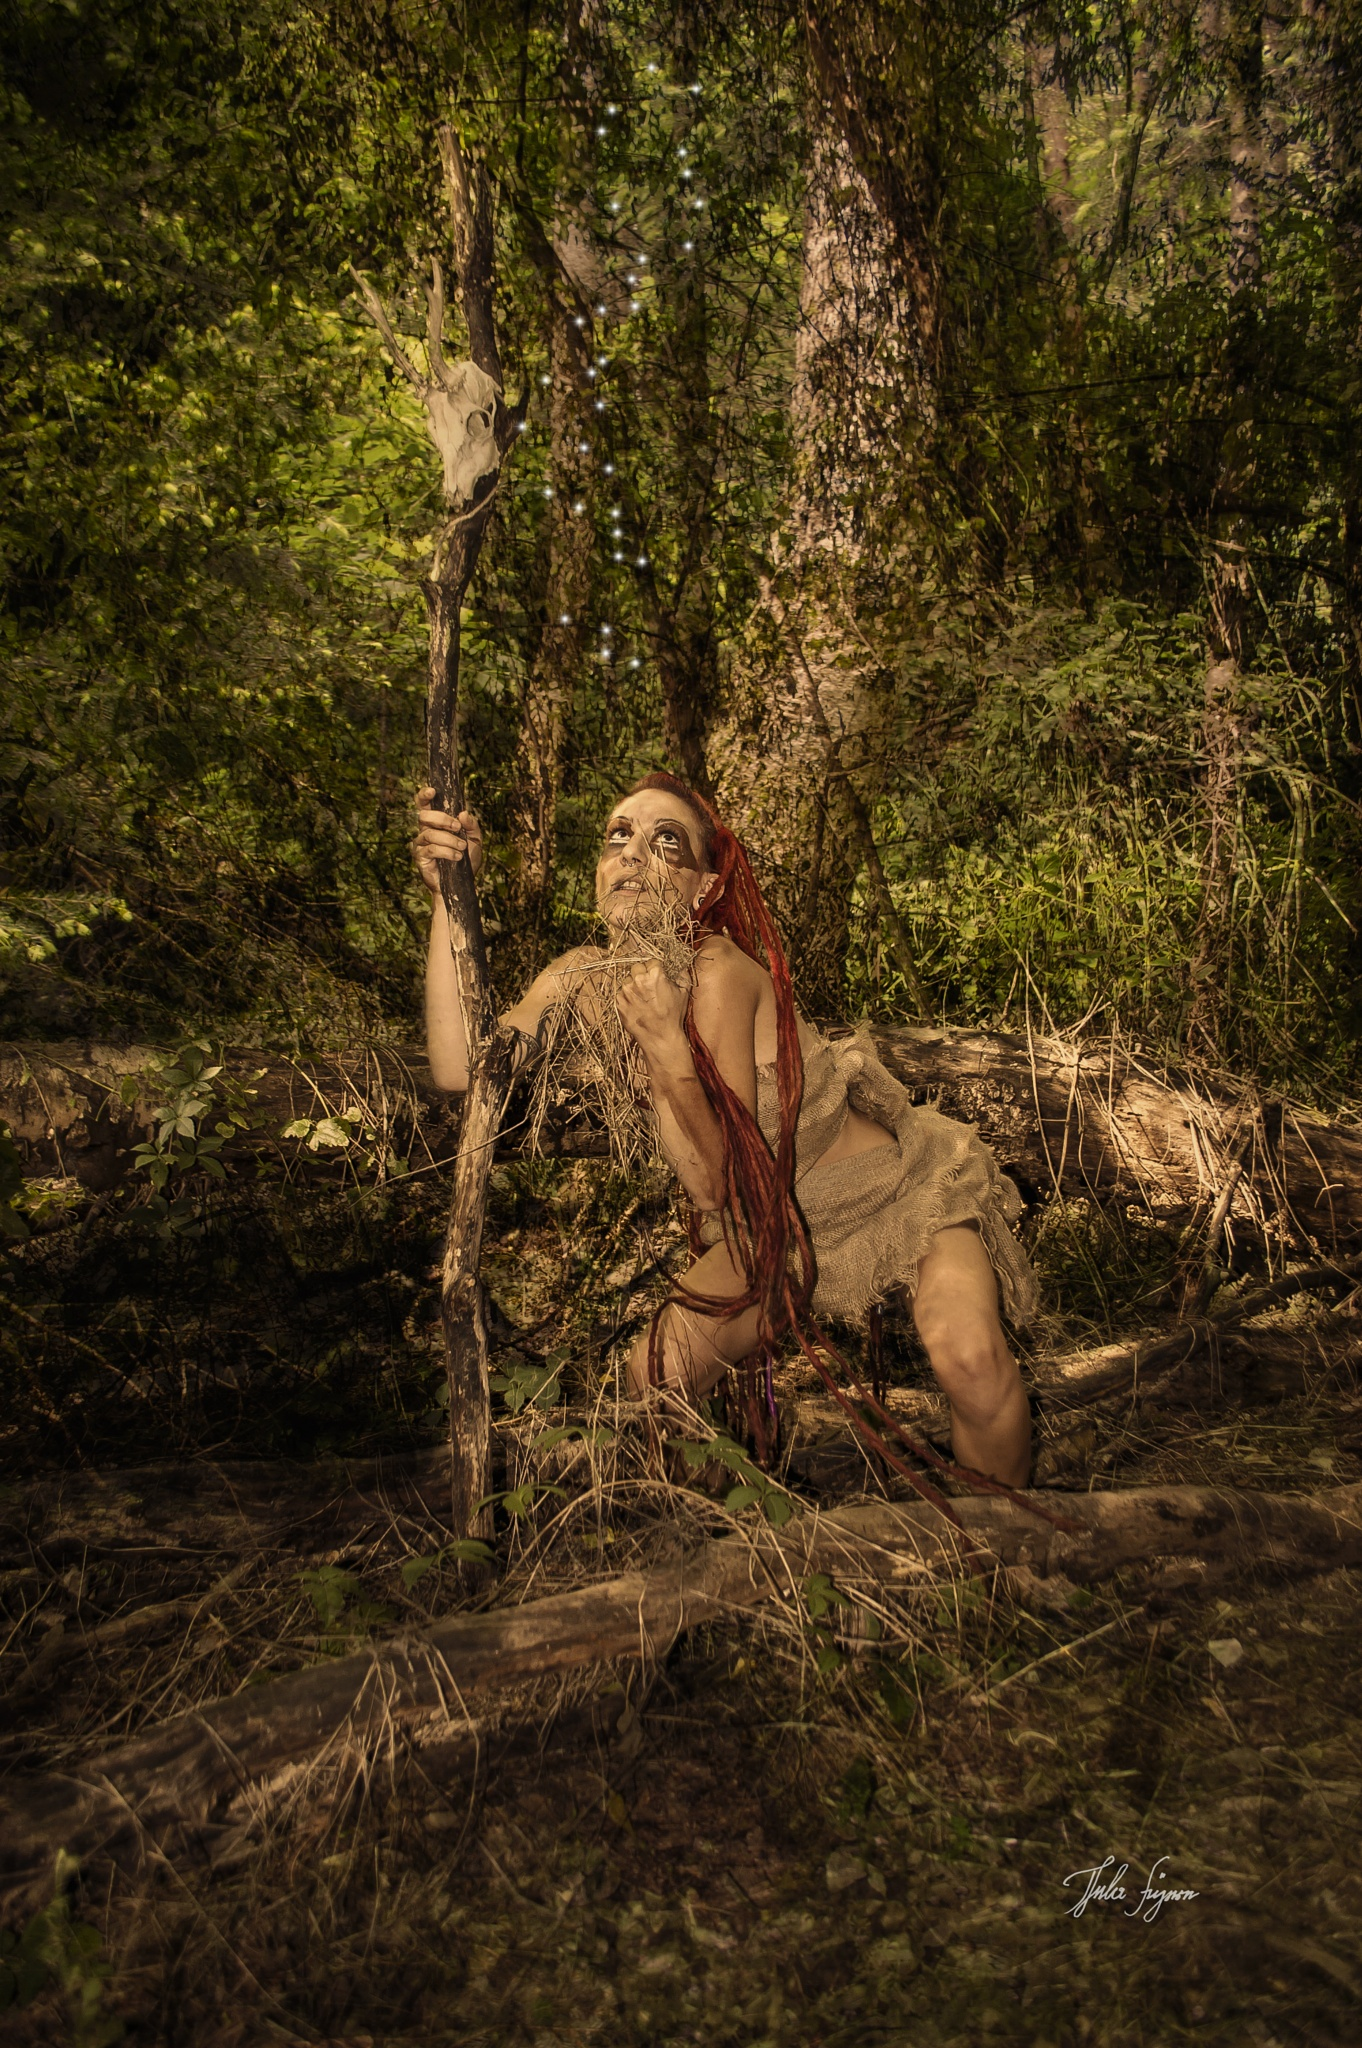 Welcome to the jungle by Thela Füpre